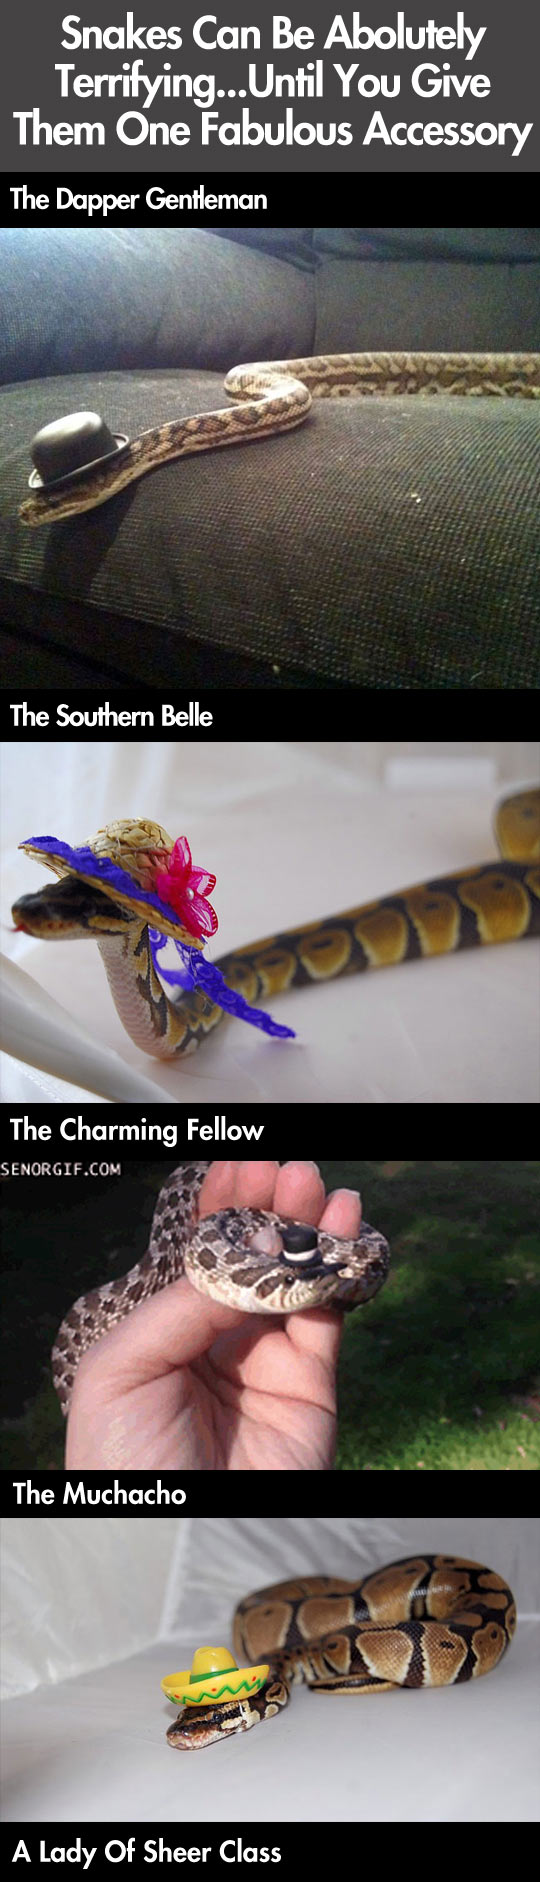 funny-snake-accessory-hat